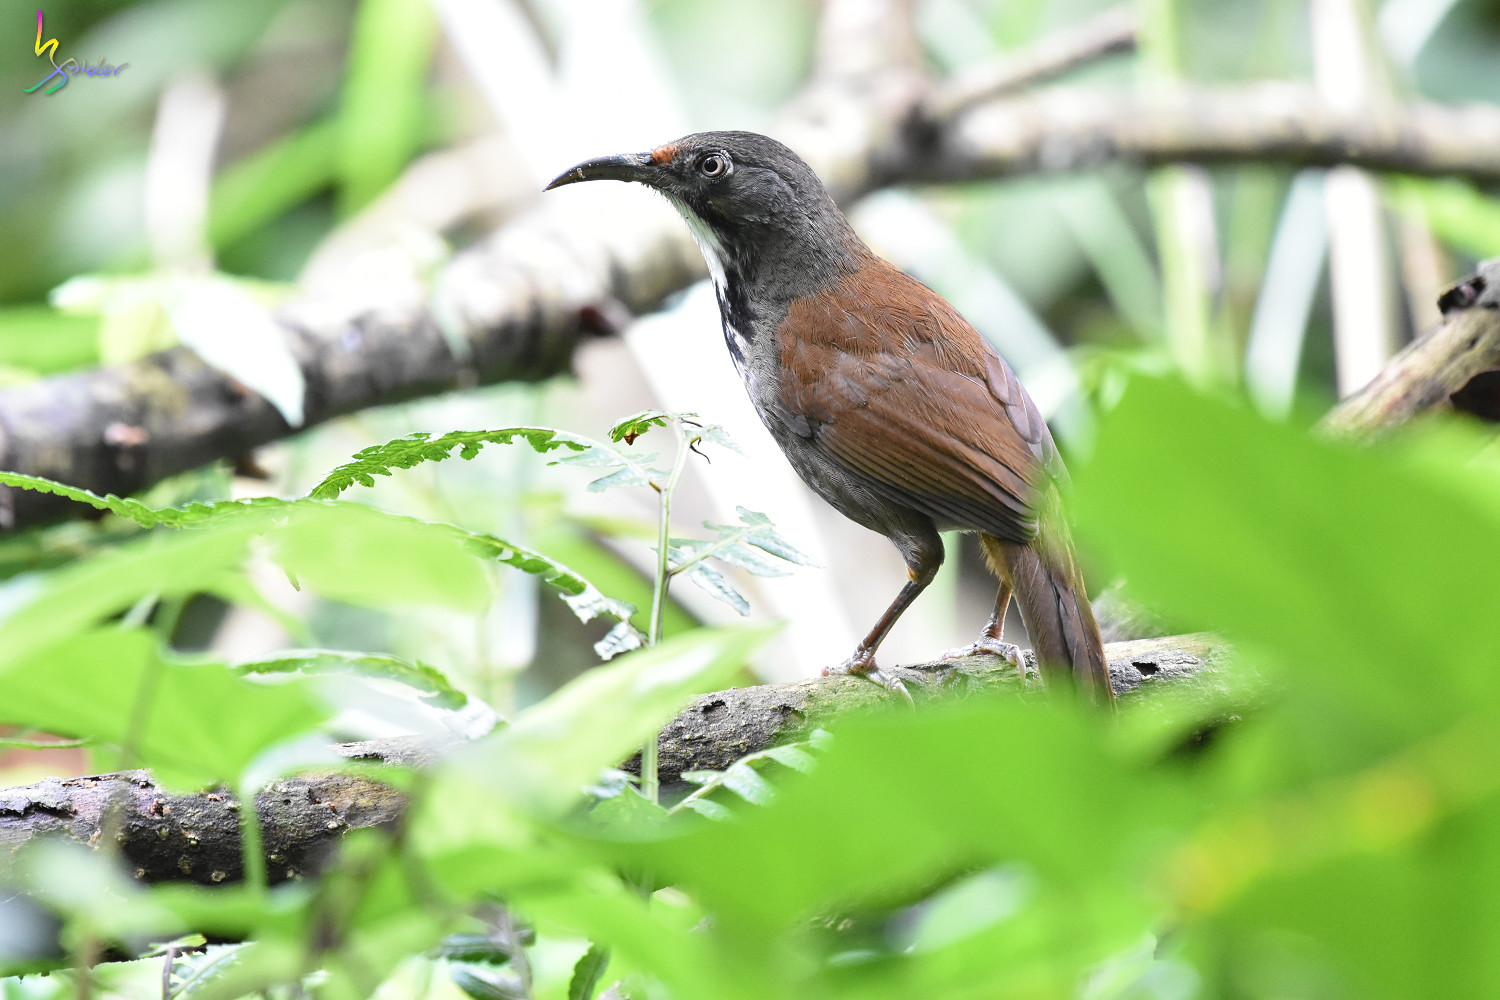 Rusty-cheeked_Scimitar-Babbler_0755